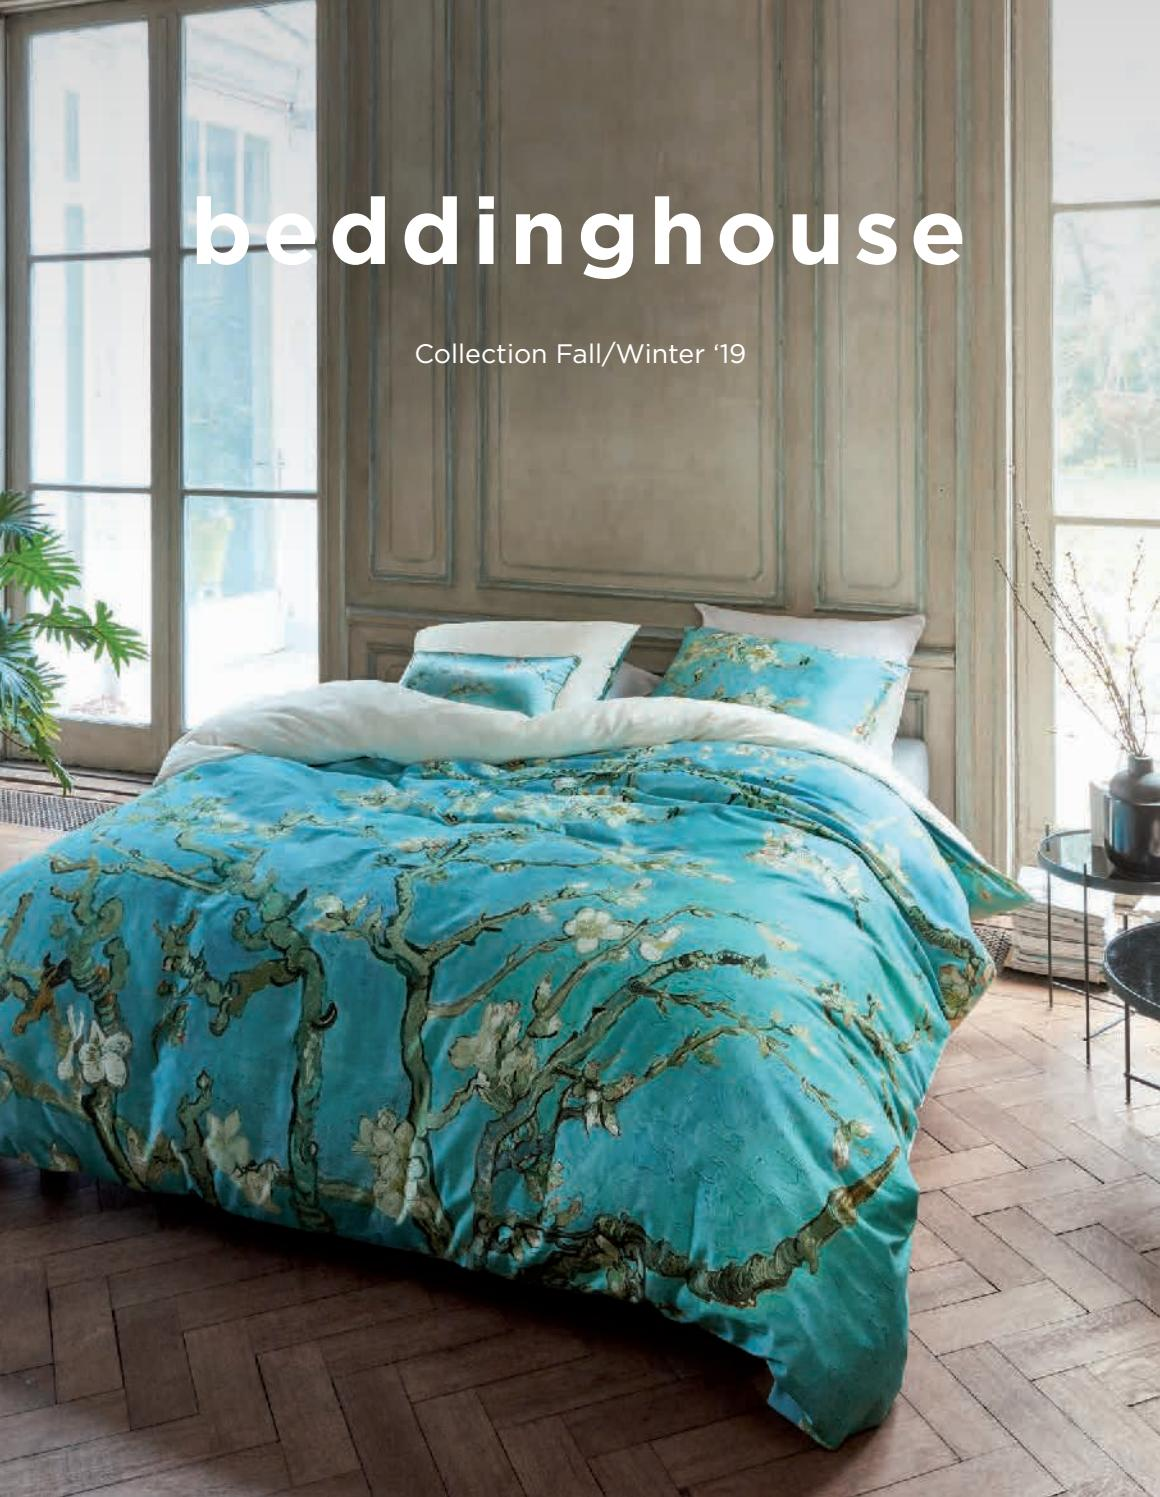 Dream Stories Bedding : dream, stories, bedding, Beddinghouse, Collectionbook, Fall/Winter, (Dutch/English), Bedding, House, Issuu